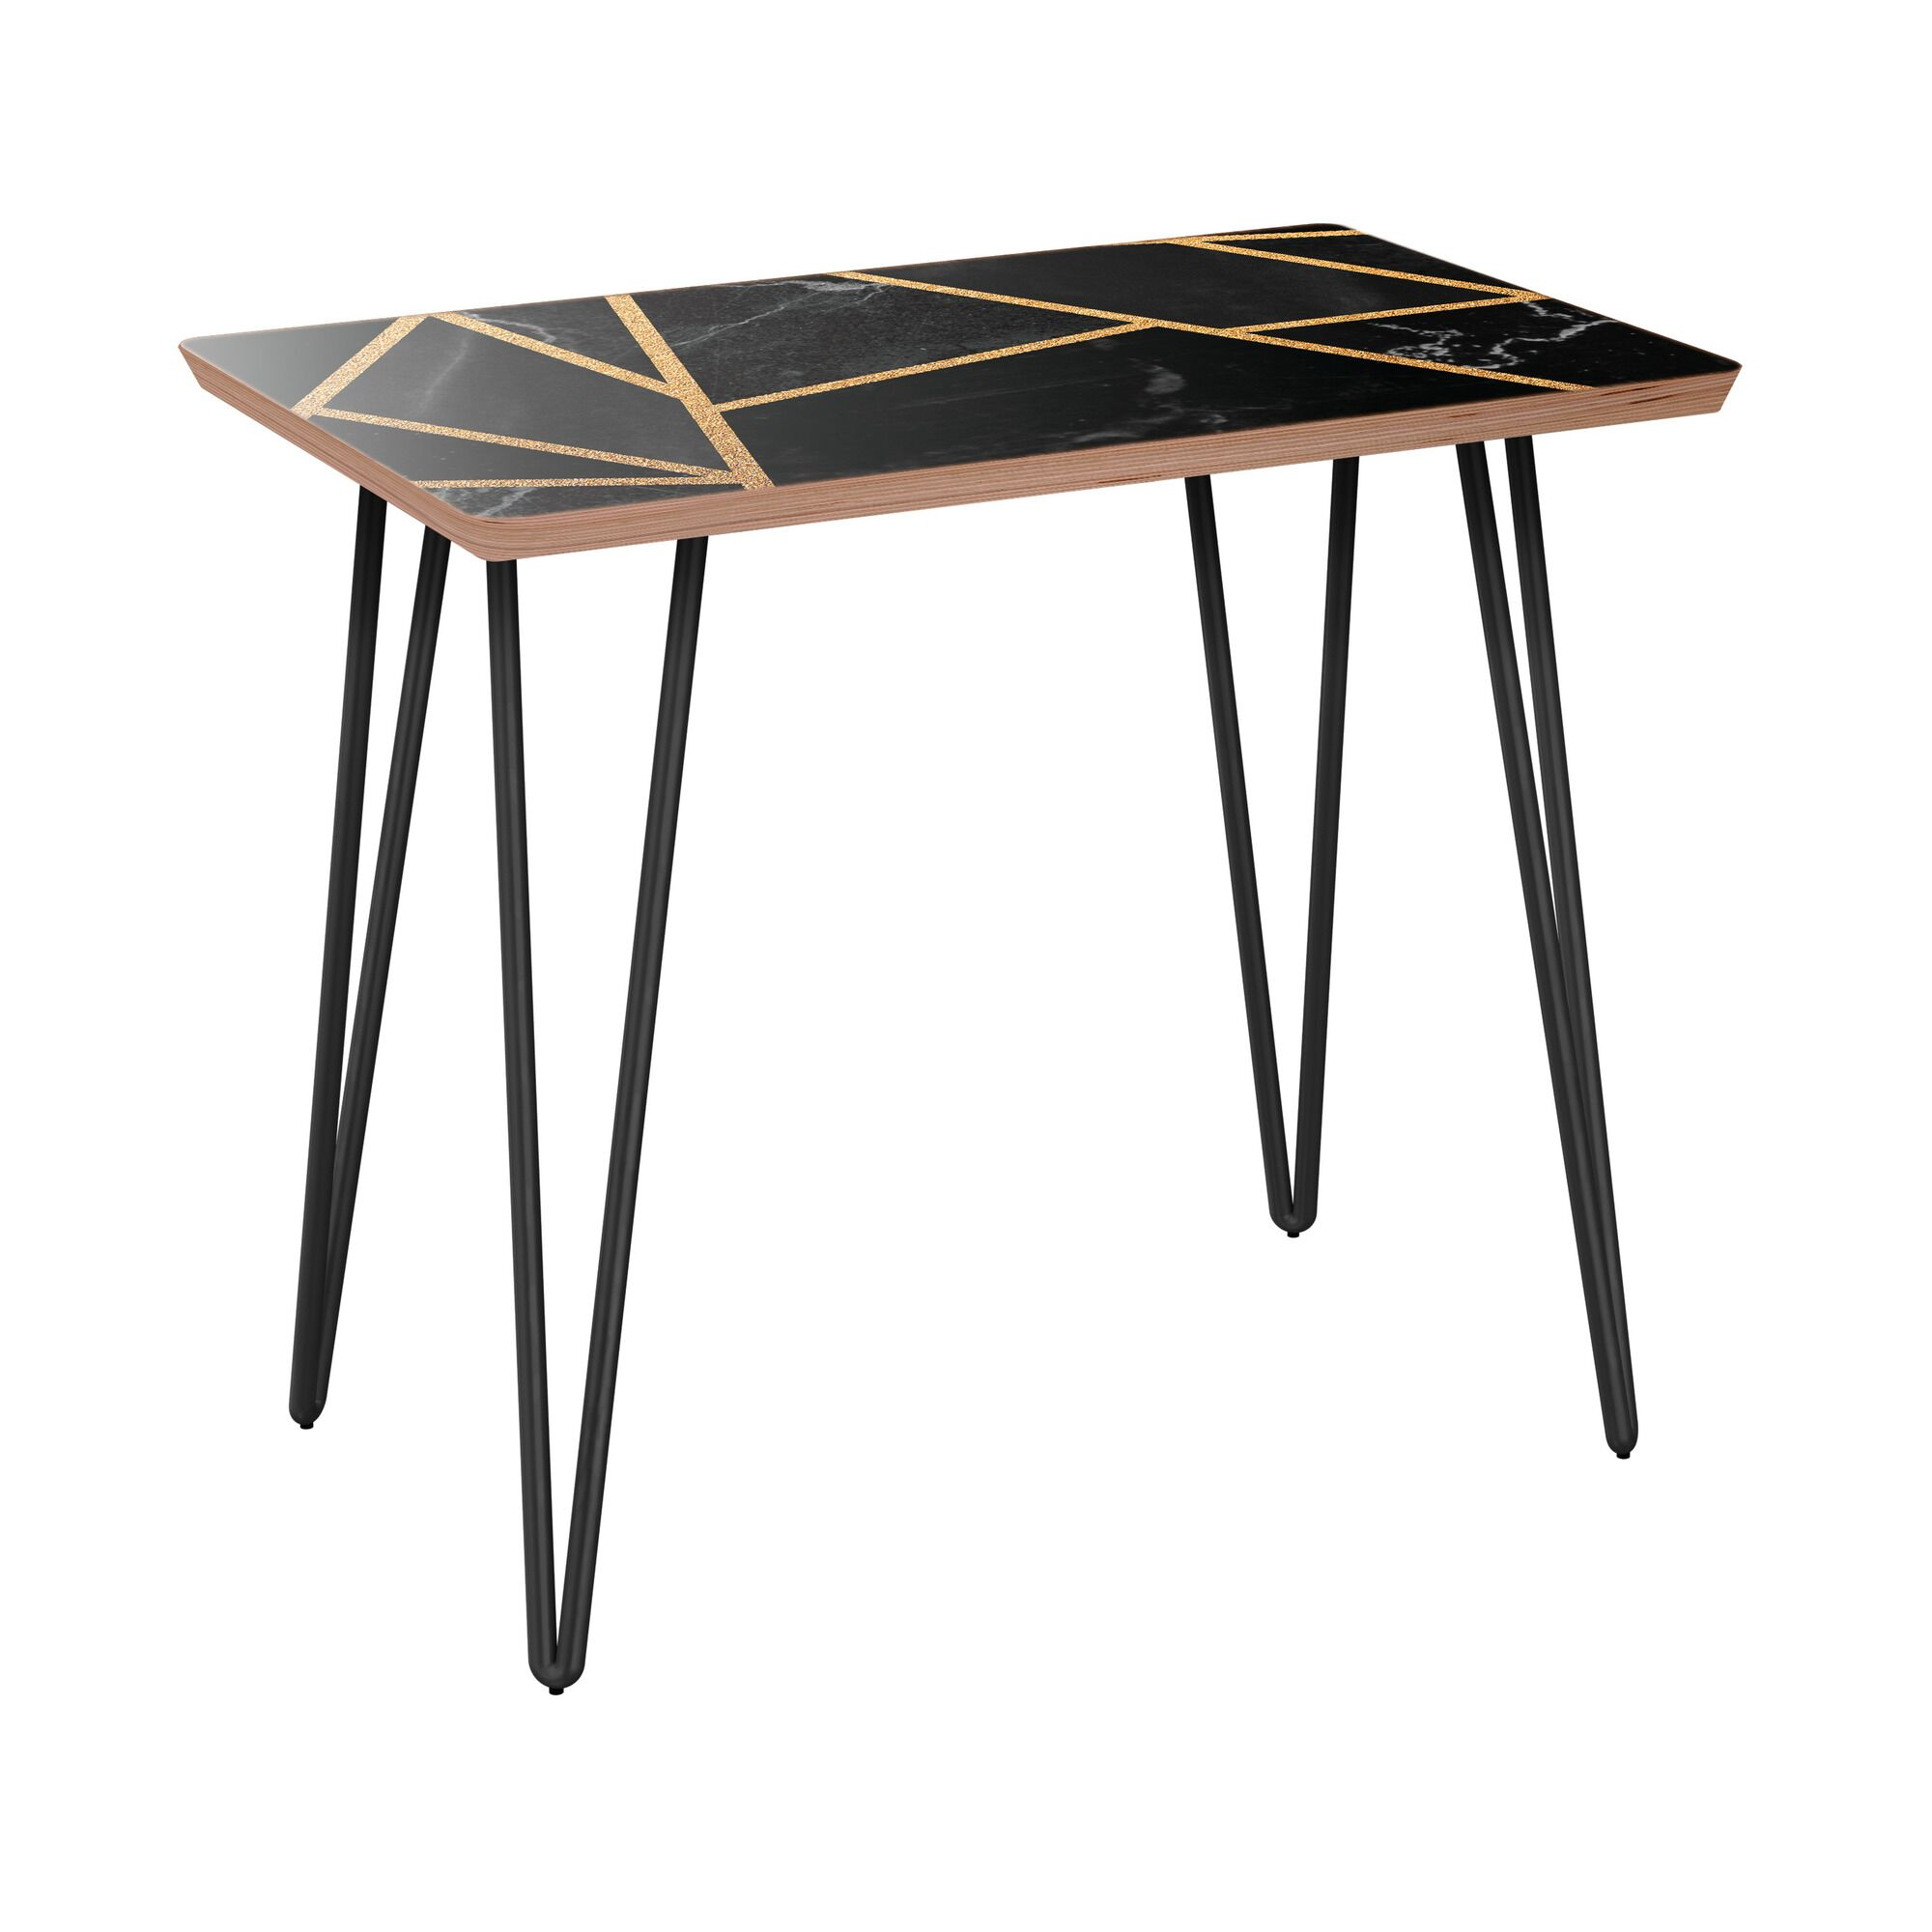 Haag End Table Table Base Color: Black, Table Top Color: Walnut